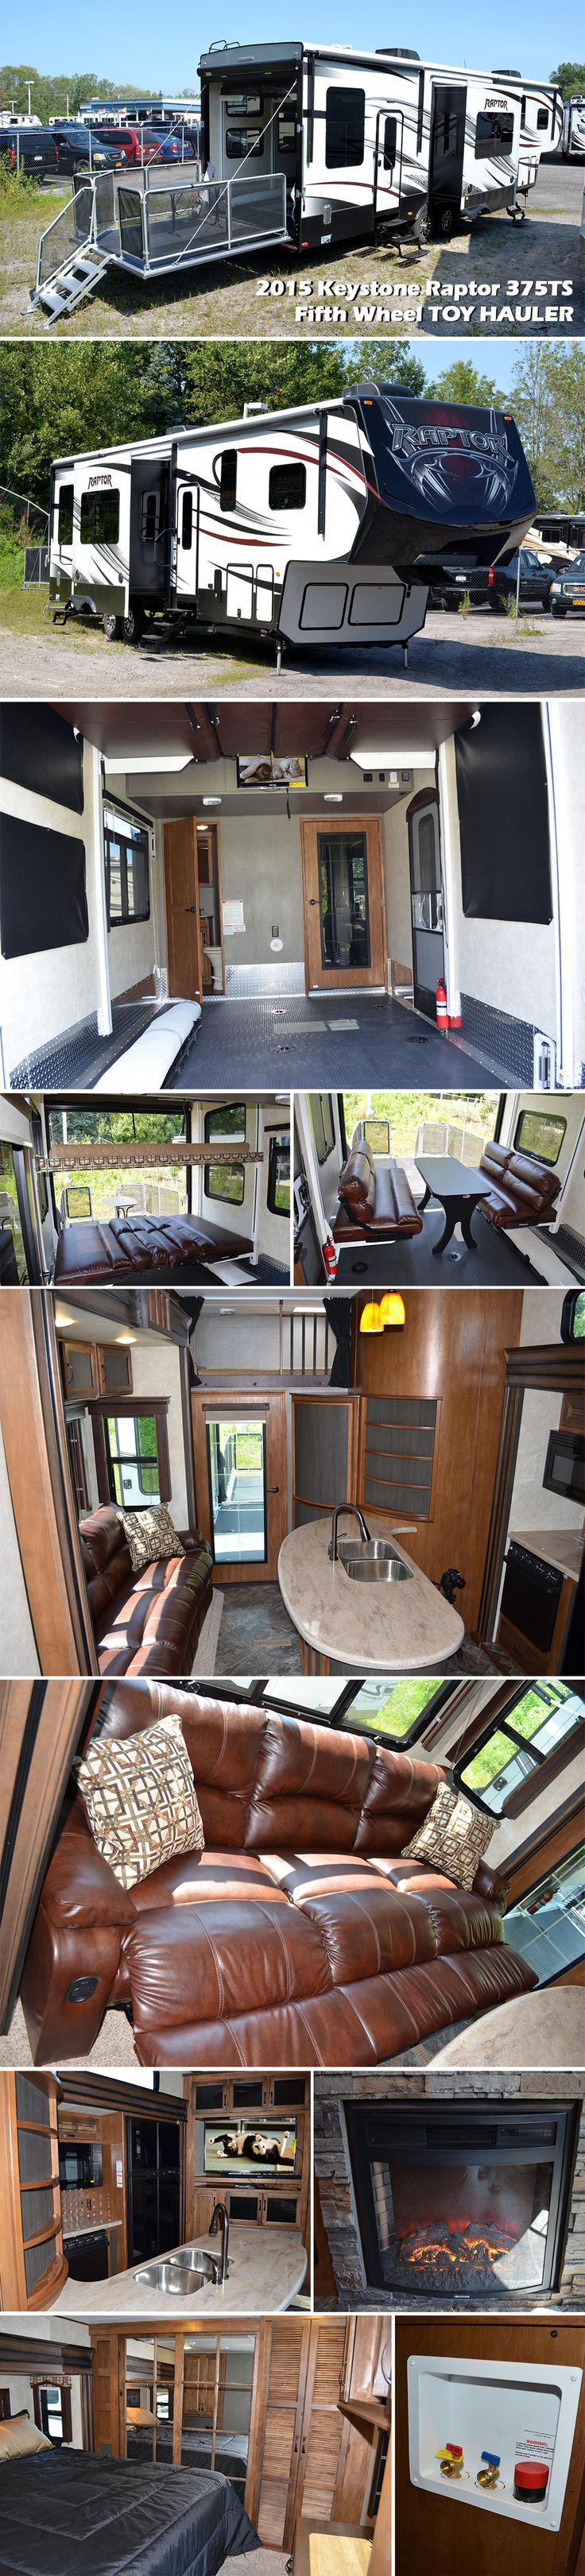 This Raptor fifth wheel TOY HAULER 375TS by Keystone RV has everything you need to enjoy camping with family, friends, and a few toys! When you reach your destination and the toys are removed there is extra living space with dual opposing sofas and an electric bed above. The twin loft overlooks the main living area which the kids will certainly enjoy. Also find a convenient half bath with toilet and sink in the cargo area so you don't have to track dirt and grim inside.